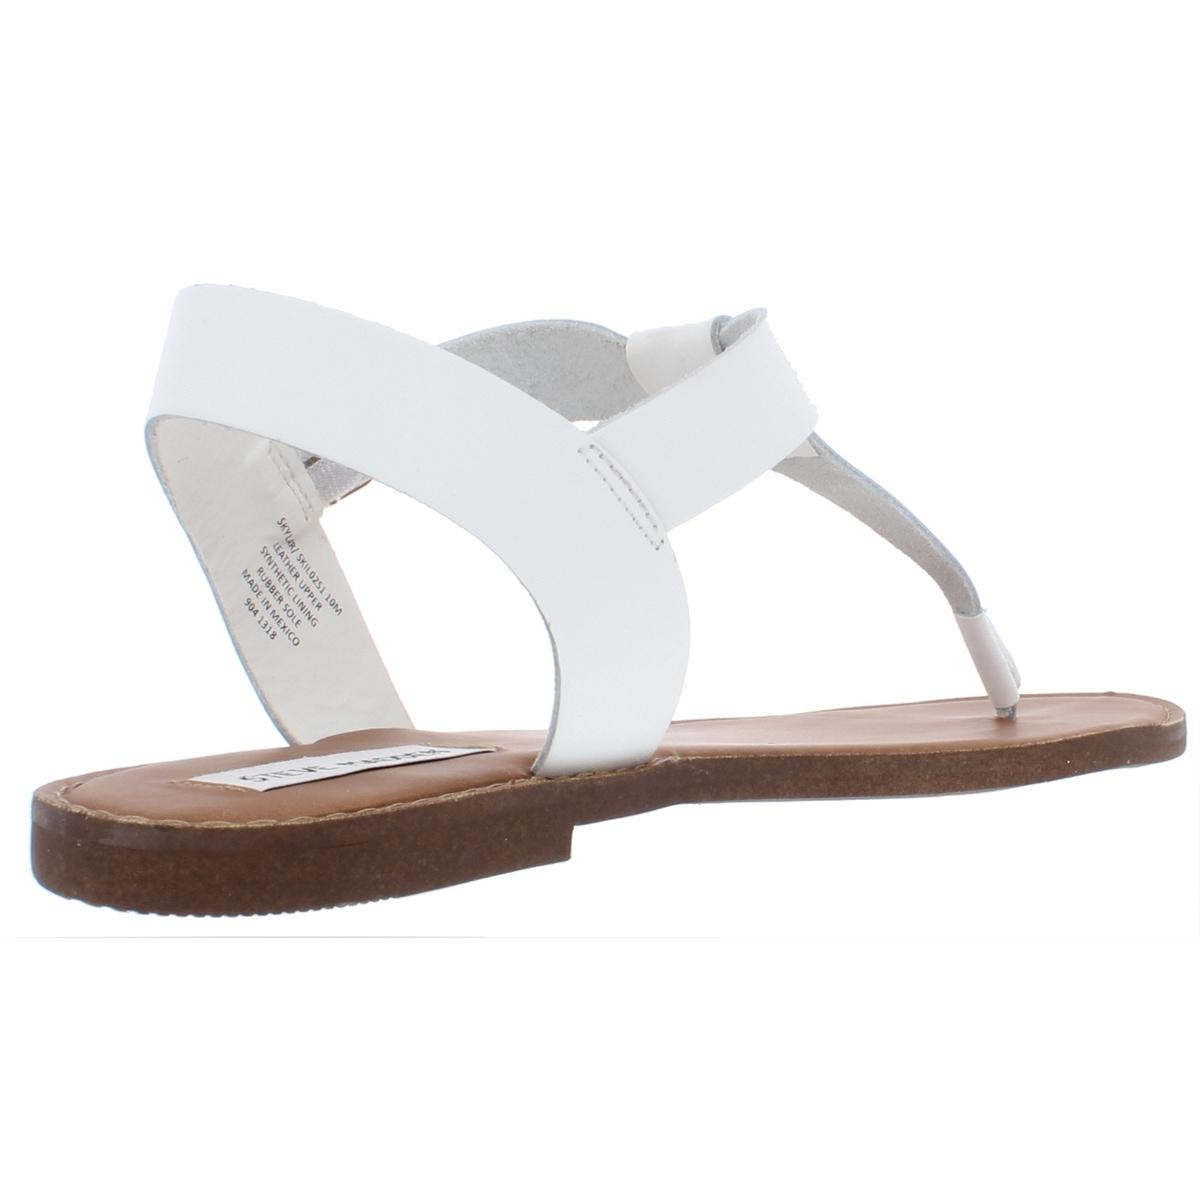 Steve-Madden-Womens-Skylar-Leather-Flats-Thong-T-Strap-Sandals-Shoes-BHFO-6308 thumbnail 8